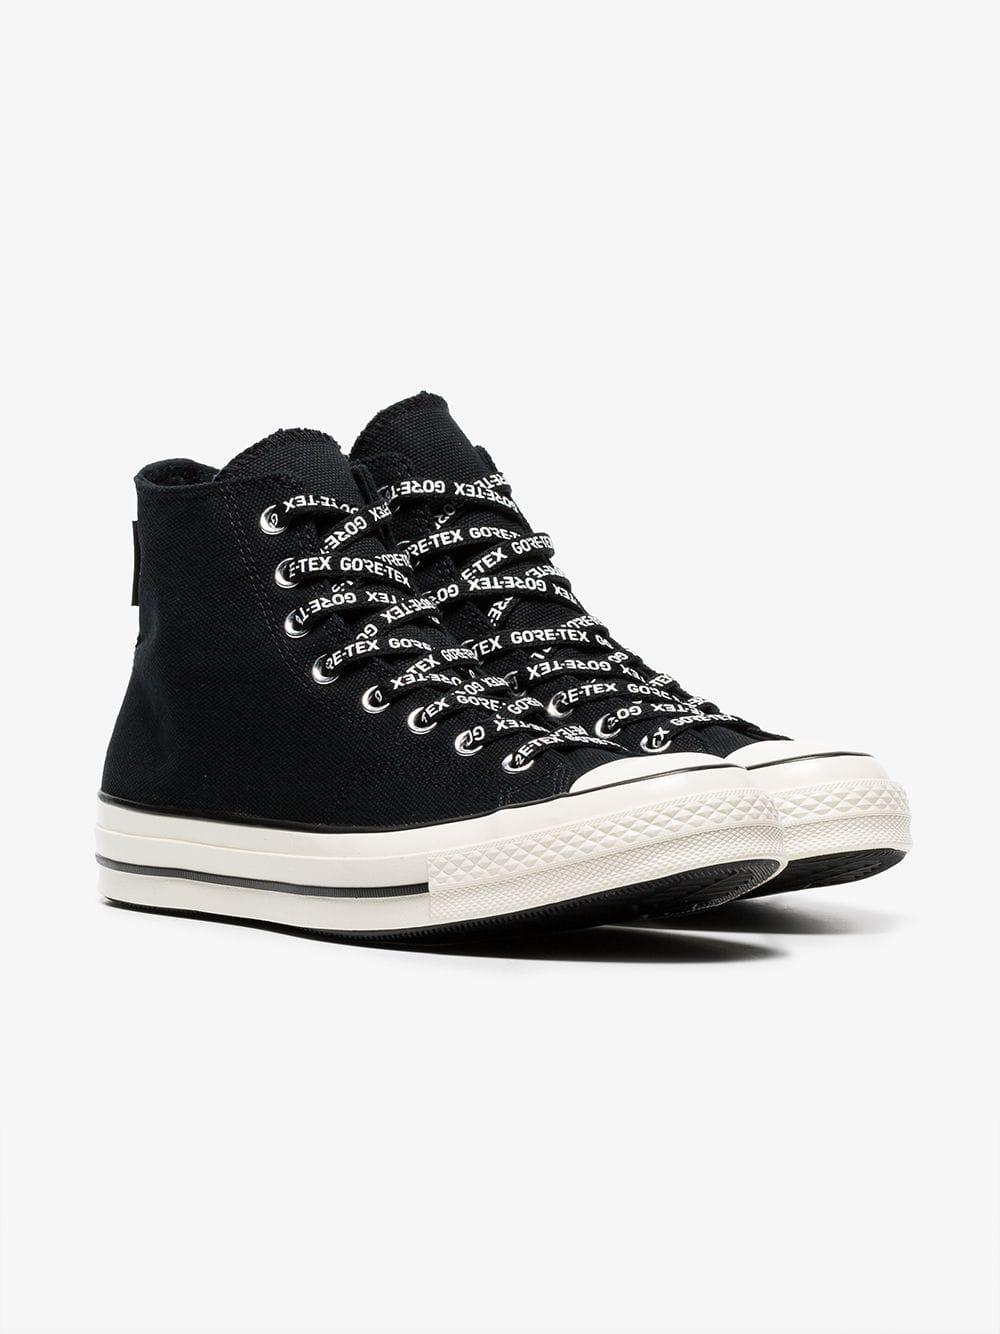 fcd801a7859 Converse - Black Chuck 70 Gore-tex High-top Sneakers for Men - Lyst. View  fullscreen